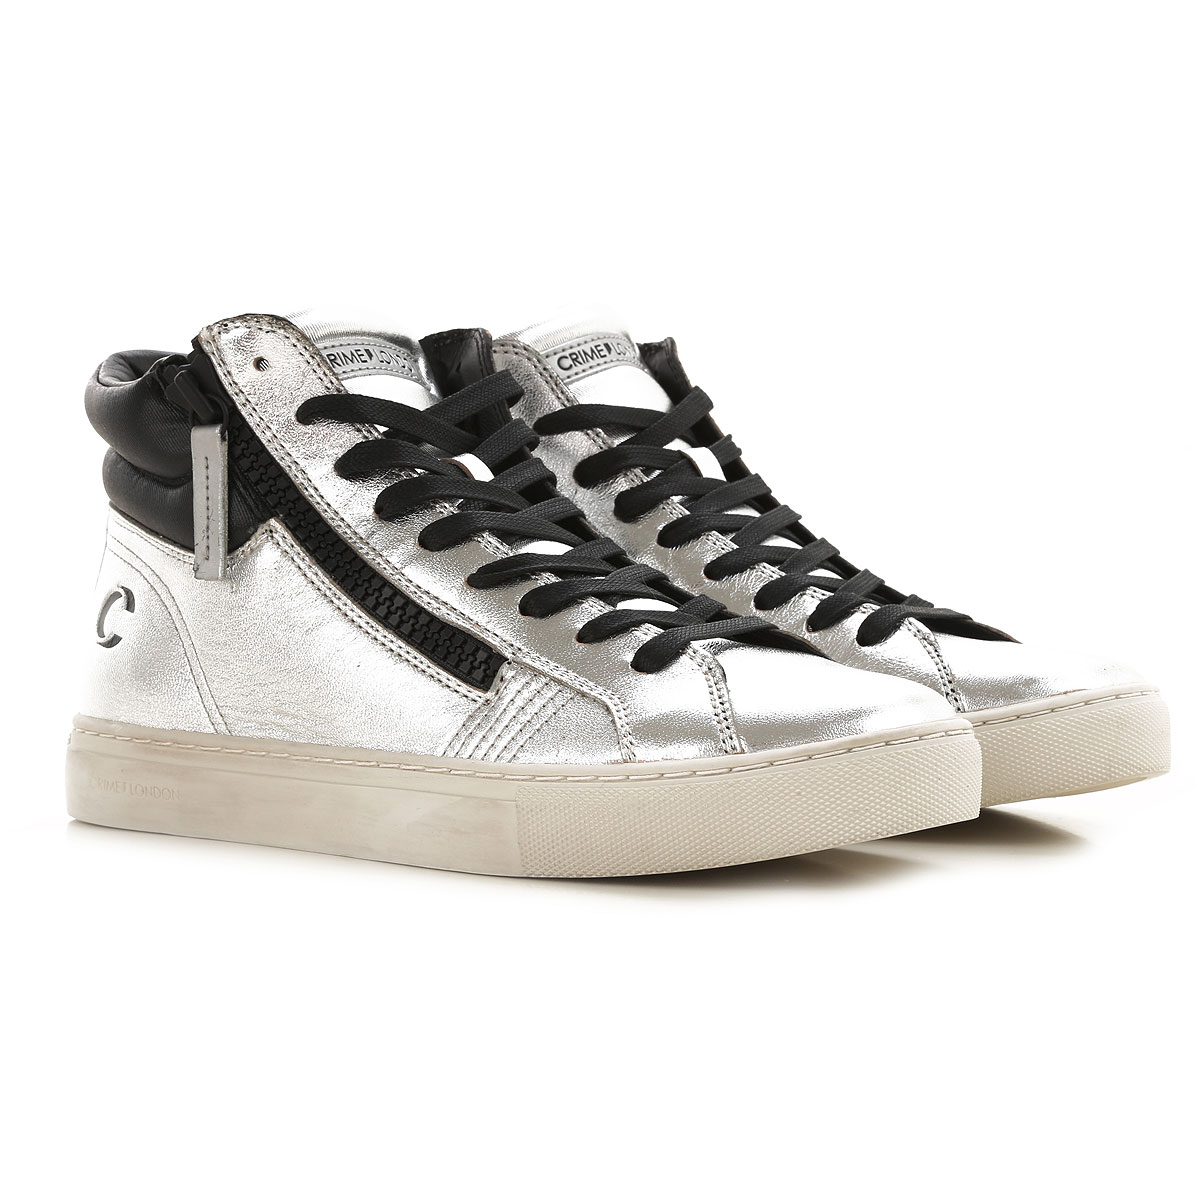 Crime Sneakers for Women On Sale, Metallic Silver, Leather, 2019, 10 6 7 8